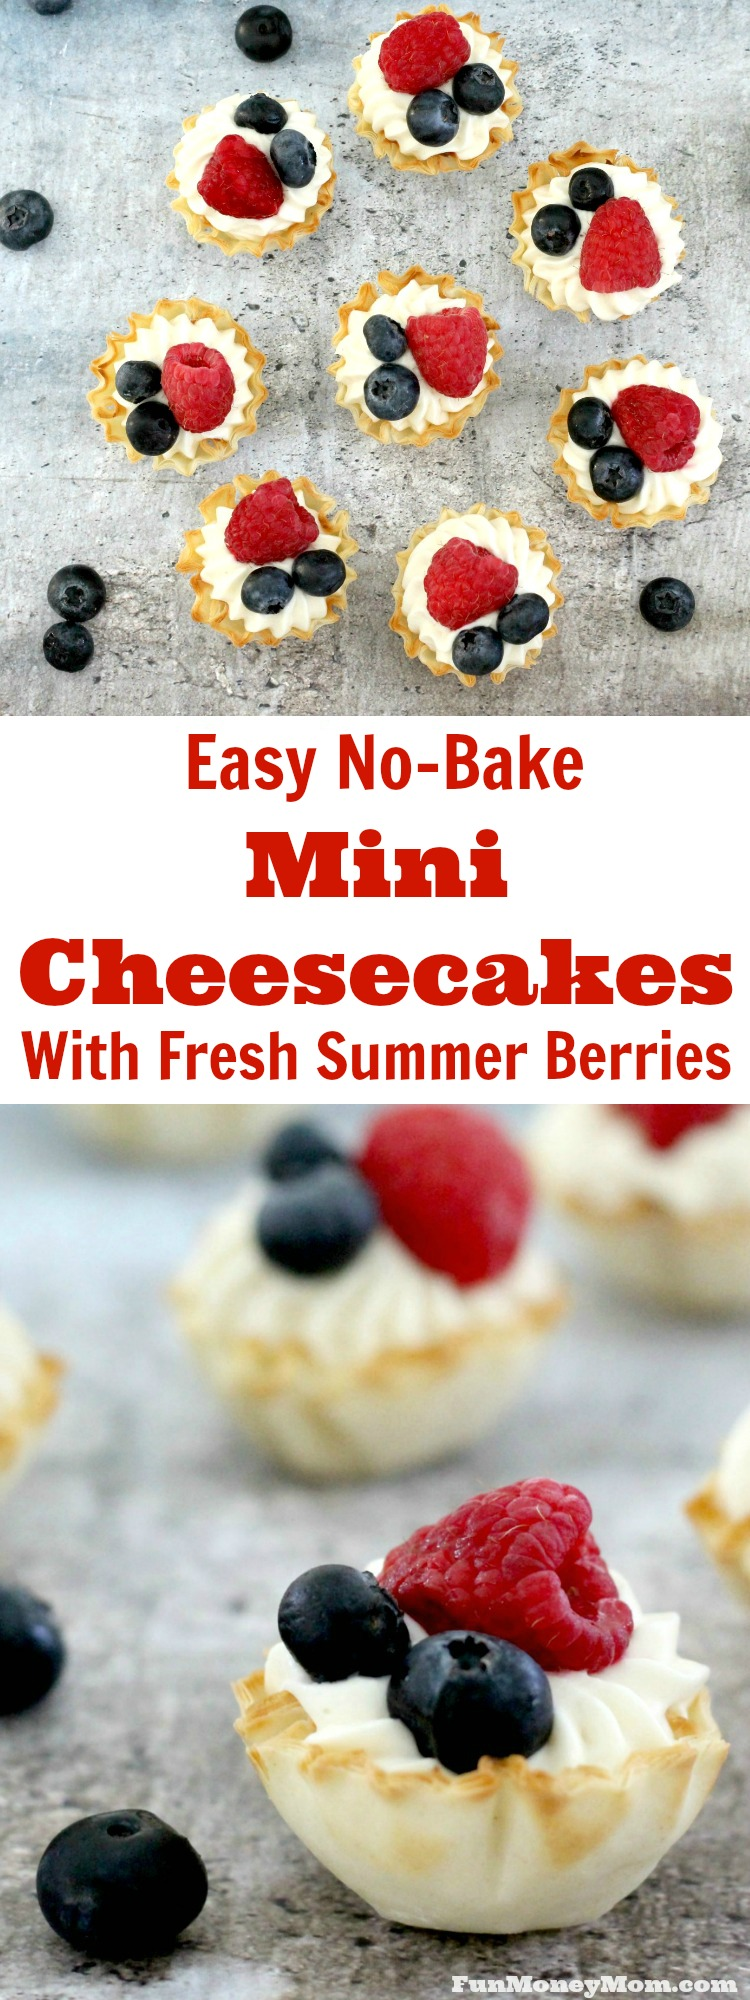 Need a fun but easy to make last minute dessert? Whip up these delicious no bake cheesecake bites with fresh berries in a matter of minutes. It's the perfect party food!